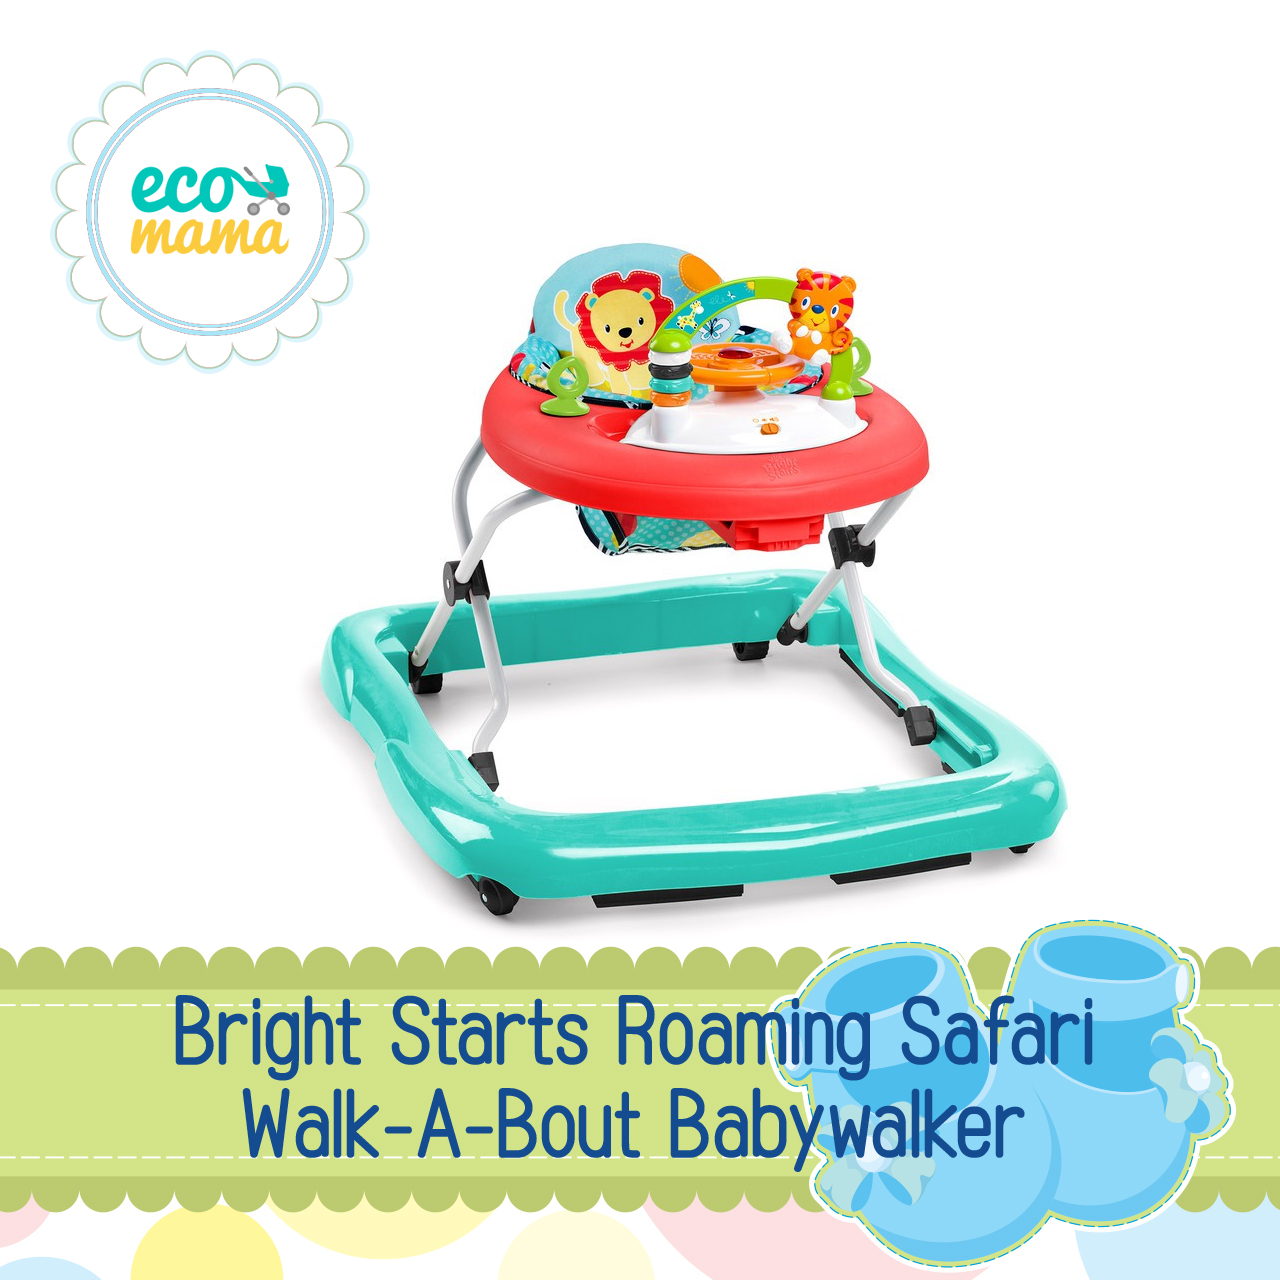 d78ea5e3fb23 Ecomama Indonesia - Bright Starts